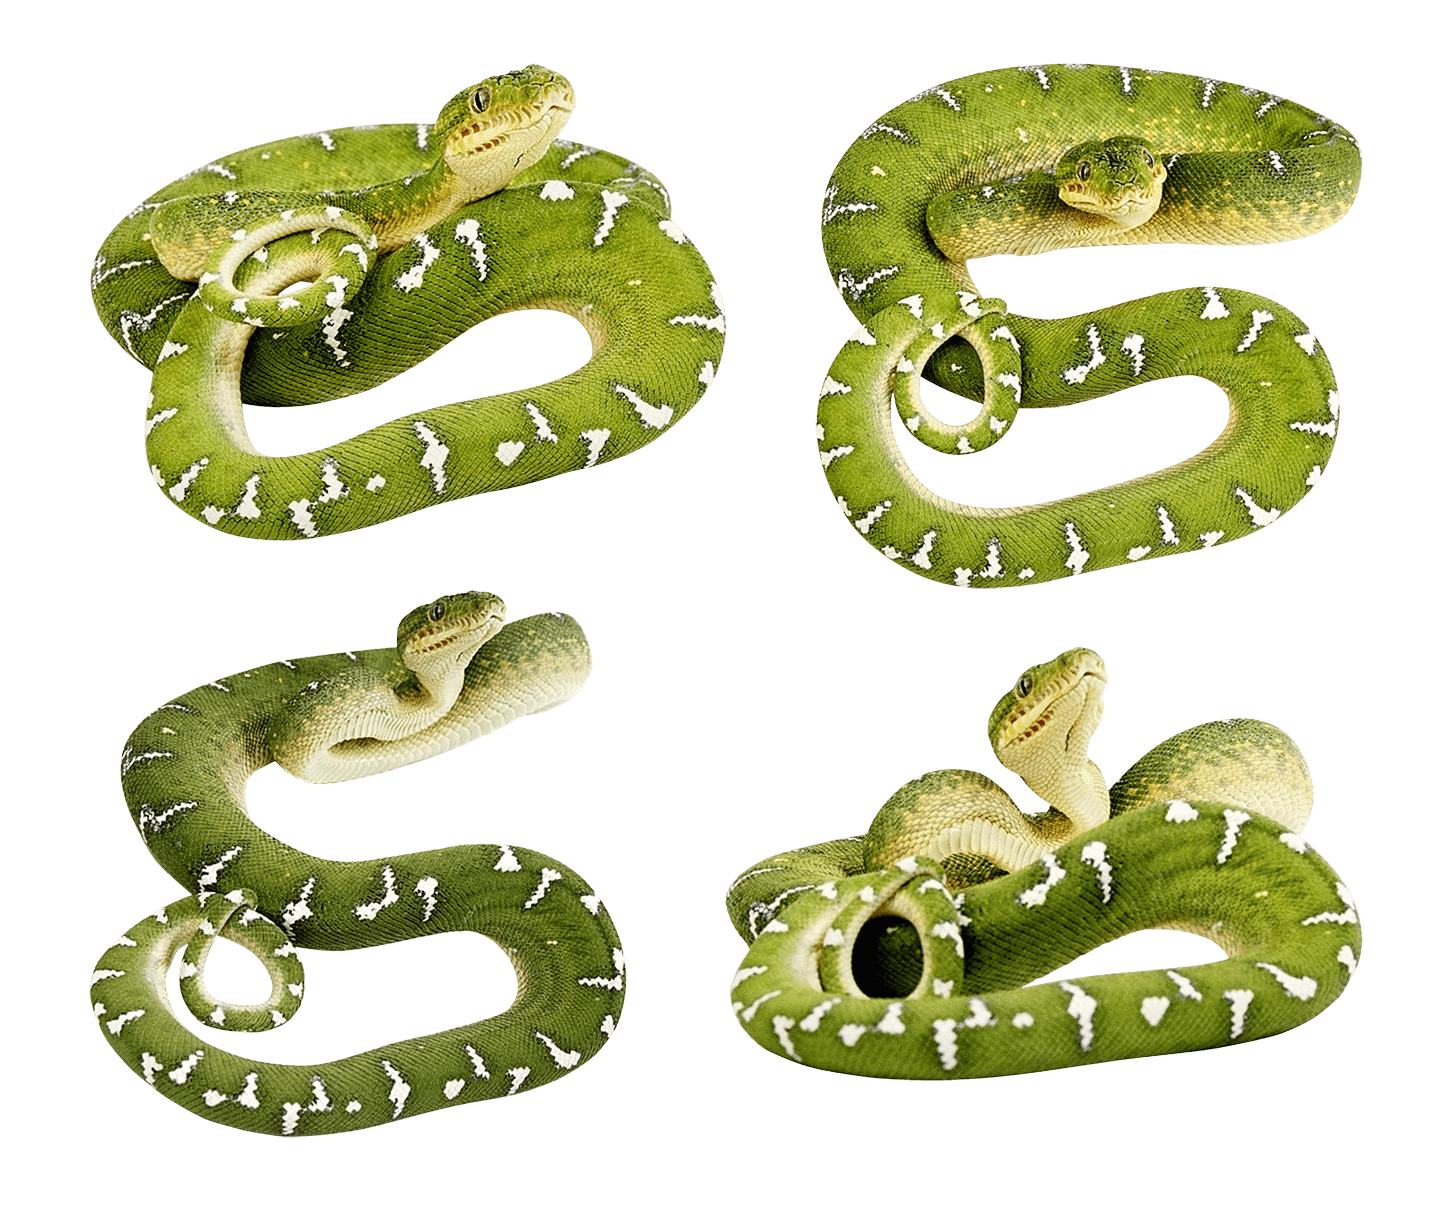 Green Snakes Png Image PNG Image